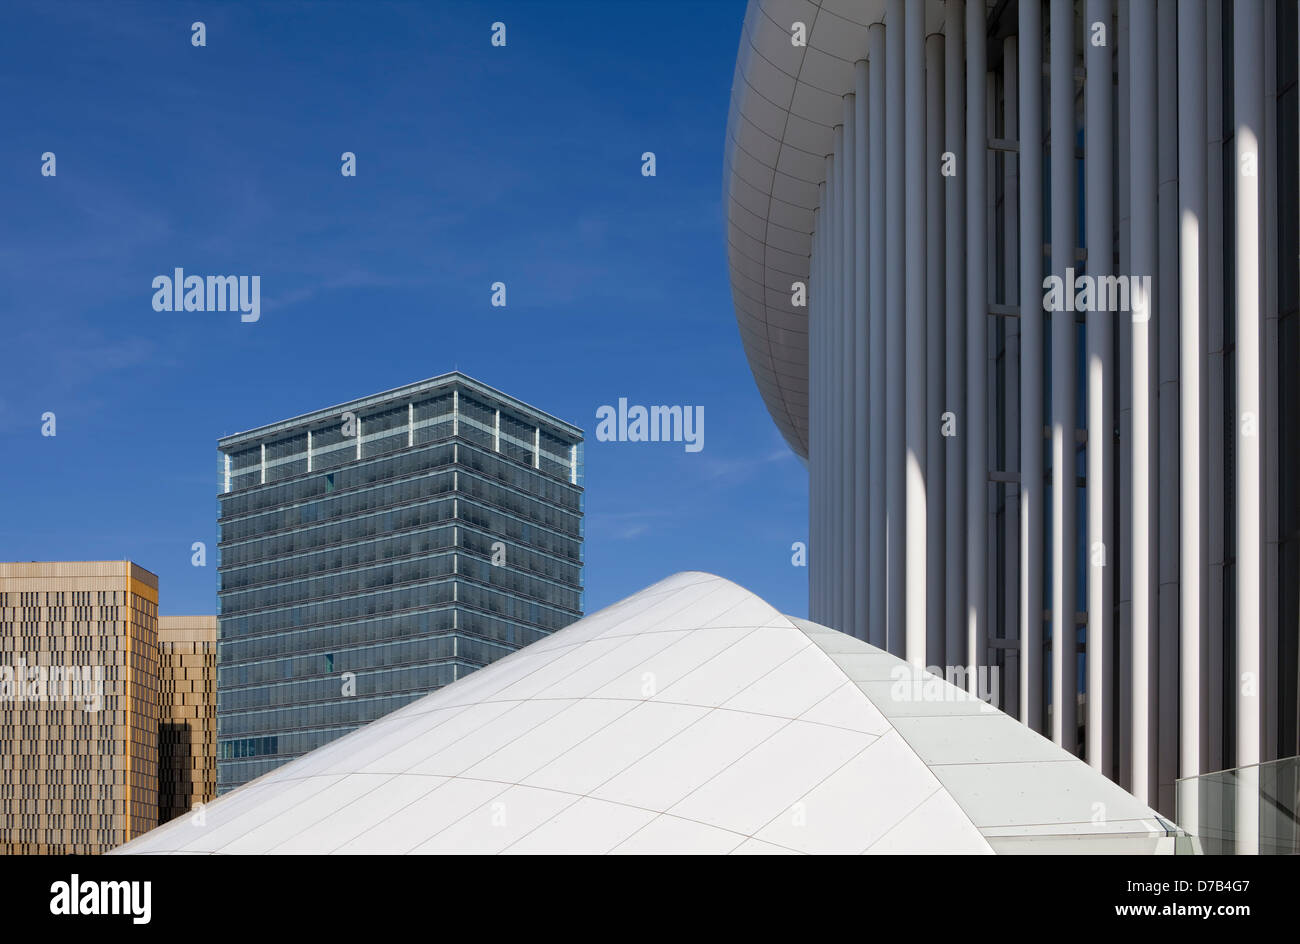 The Philharmonic Hall, Place de l'Europe, European quarter, Kirchberg plateau, Luxembourg City, Europe, Stock Photo